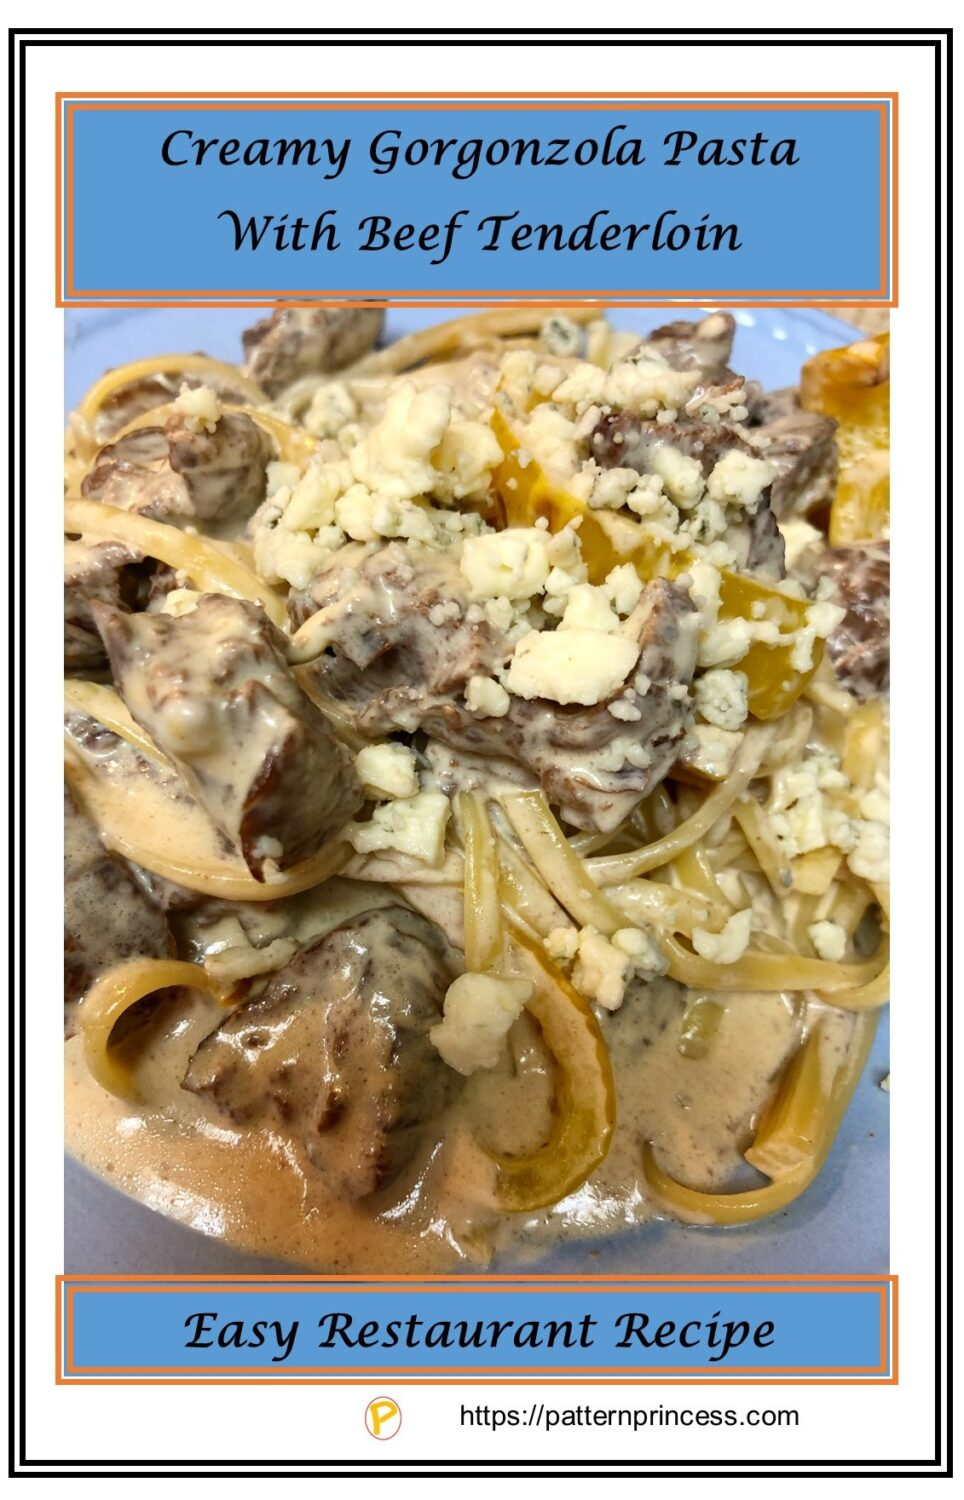 Creamy Gorgonzola Pasta With Beef Tenderloin